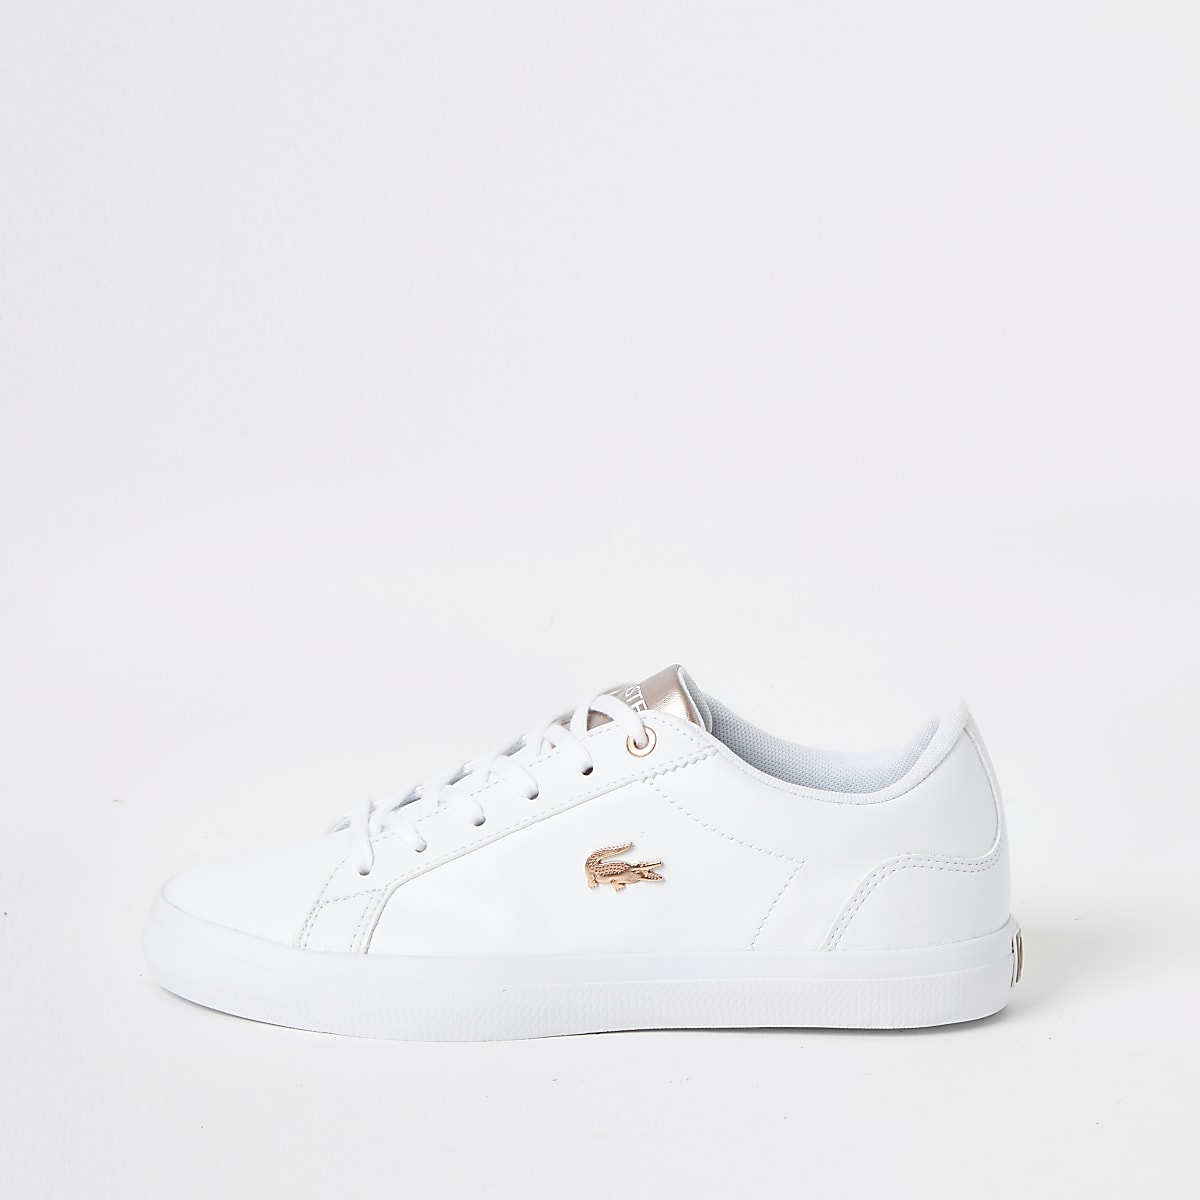 Lacoste white Lerond low-top leather sneakers